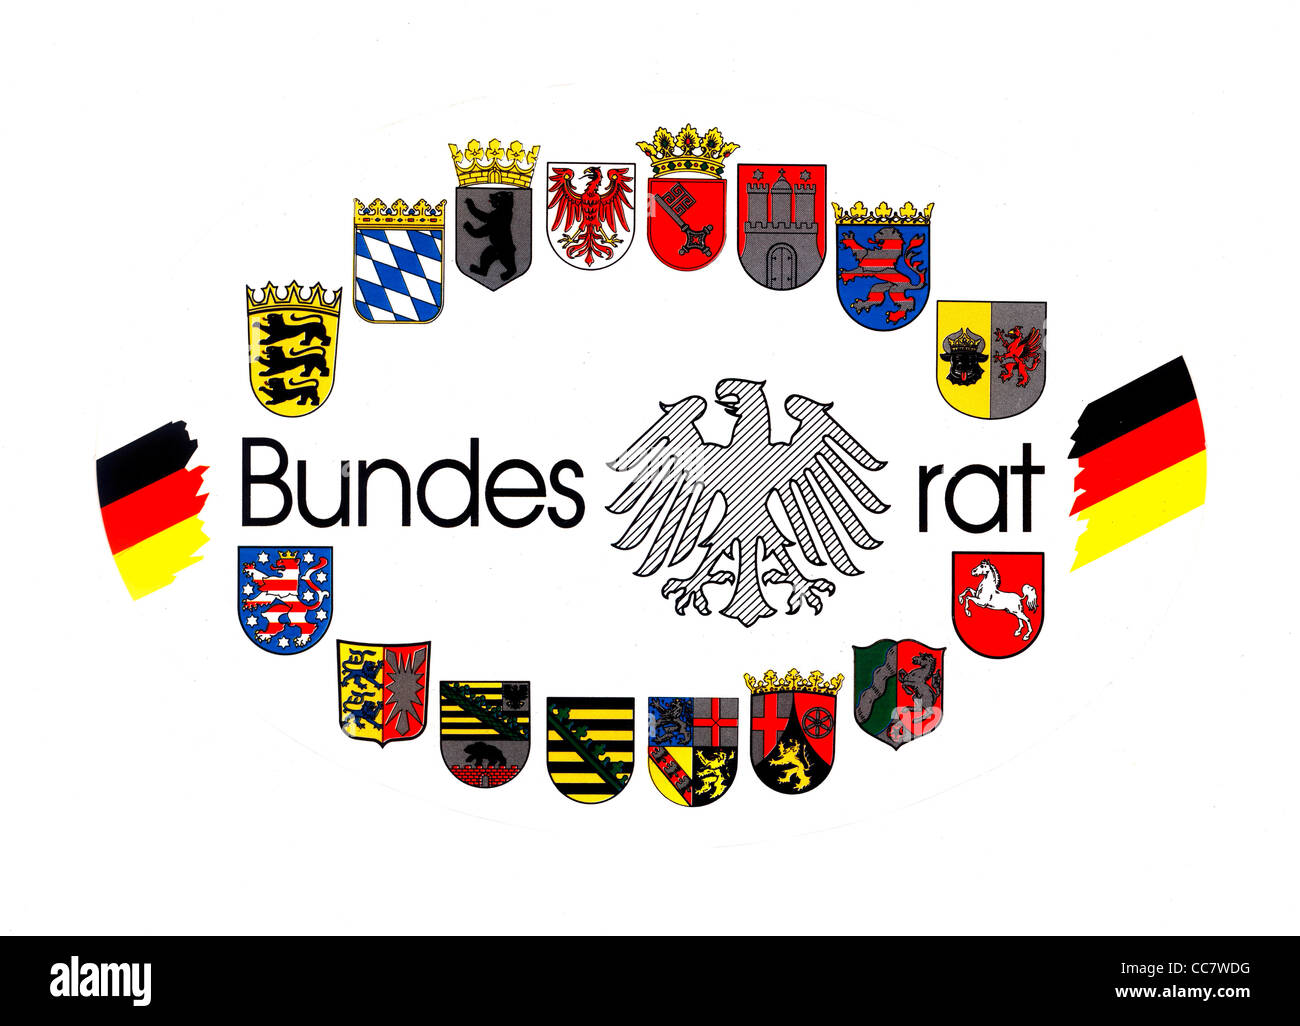 Logo of the Bundesrat with the coats of arms of the 16 German Federal States. - Stock Image